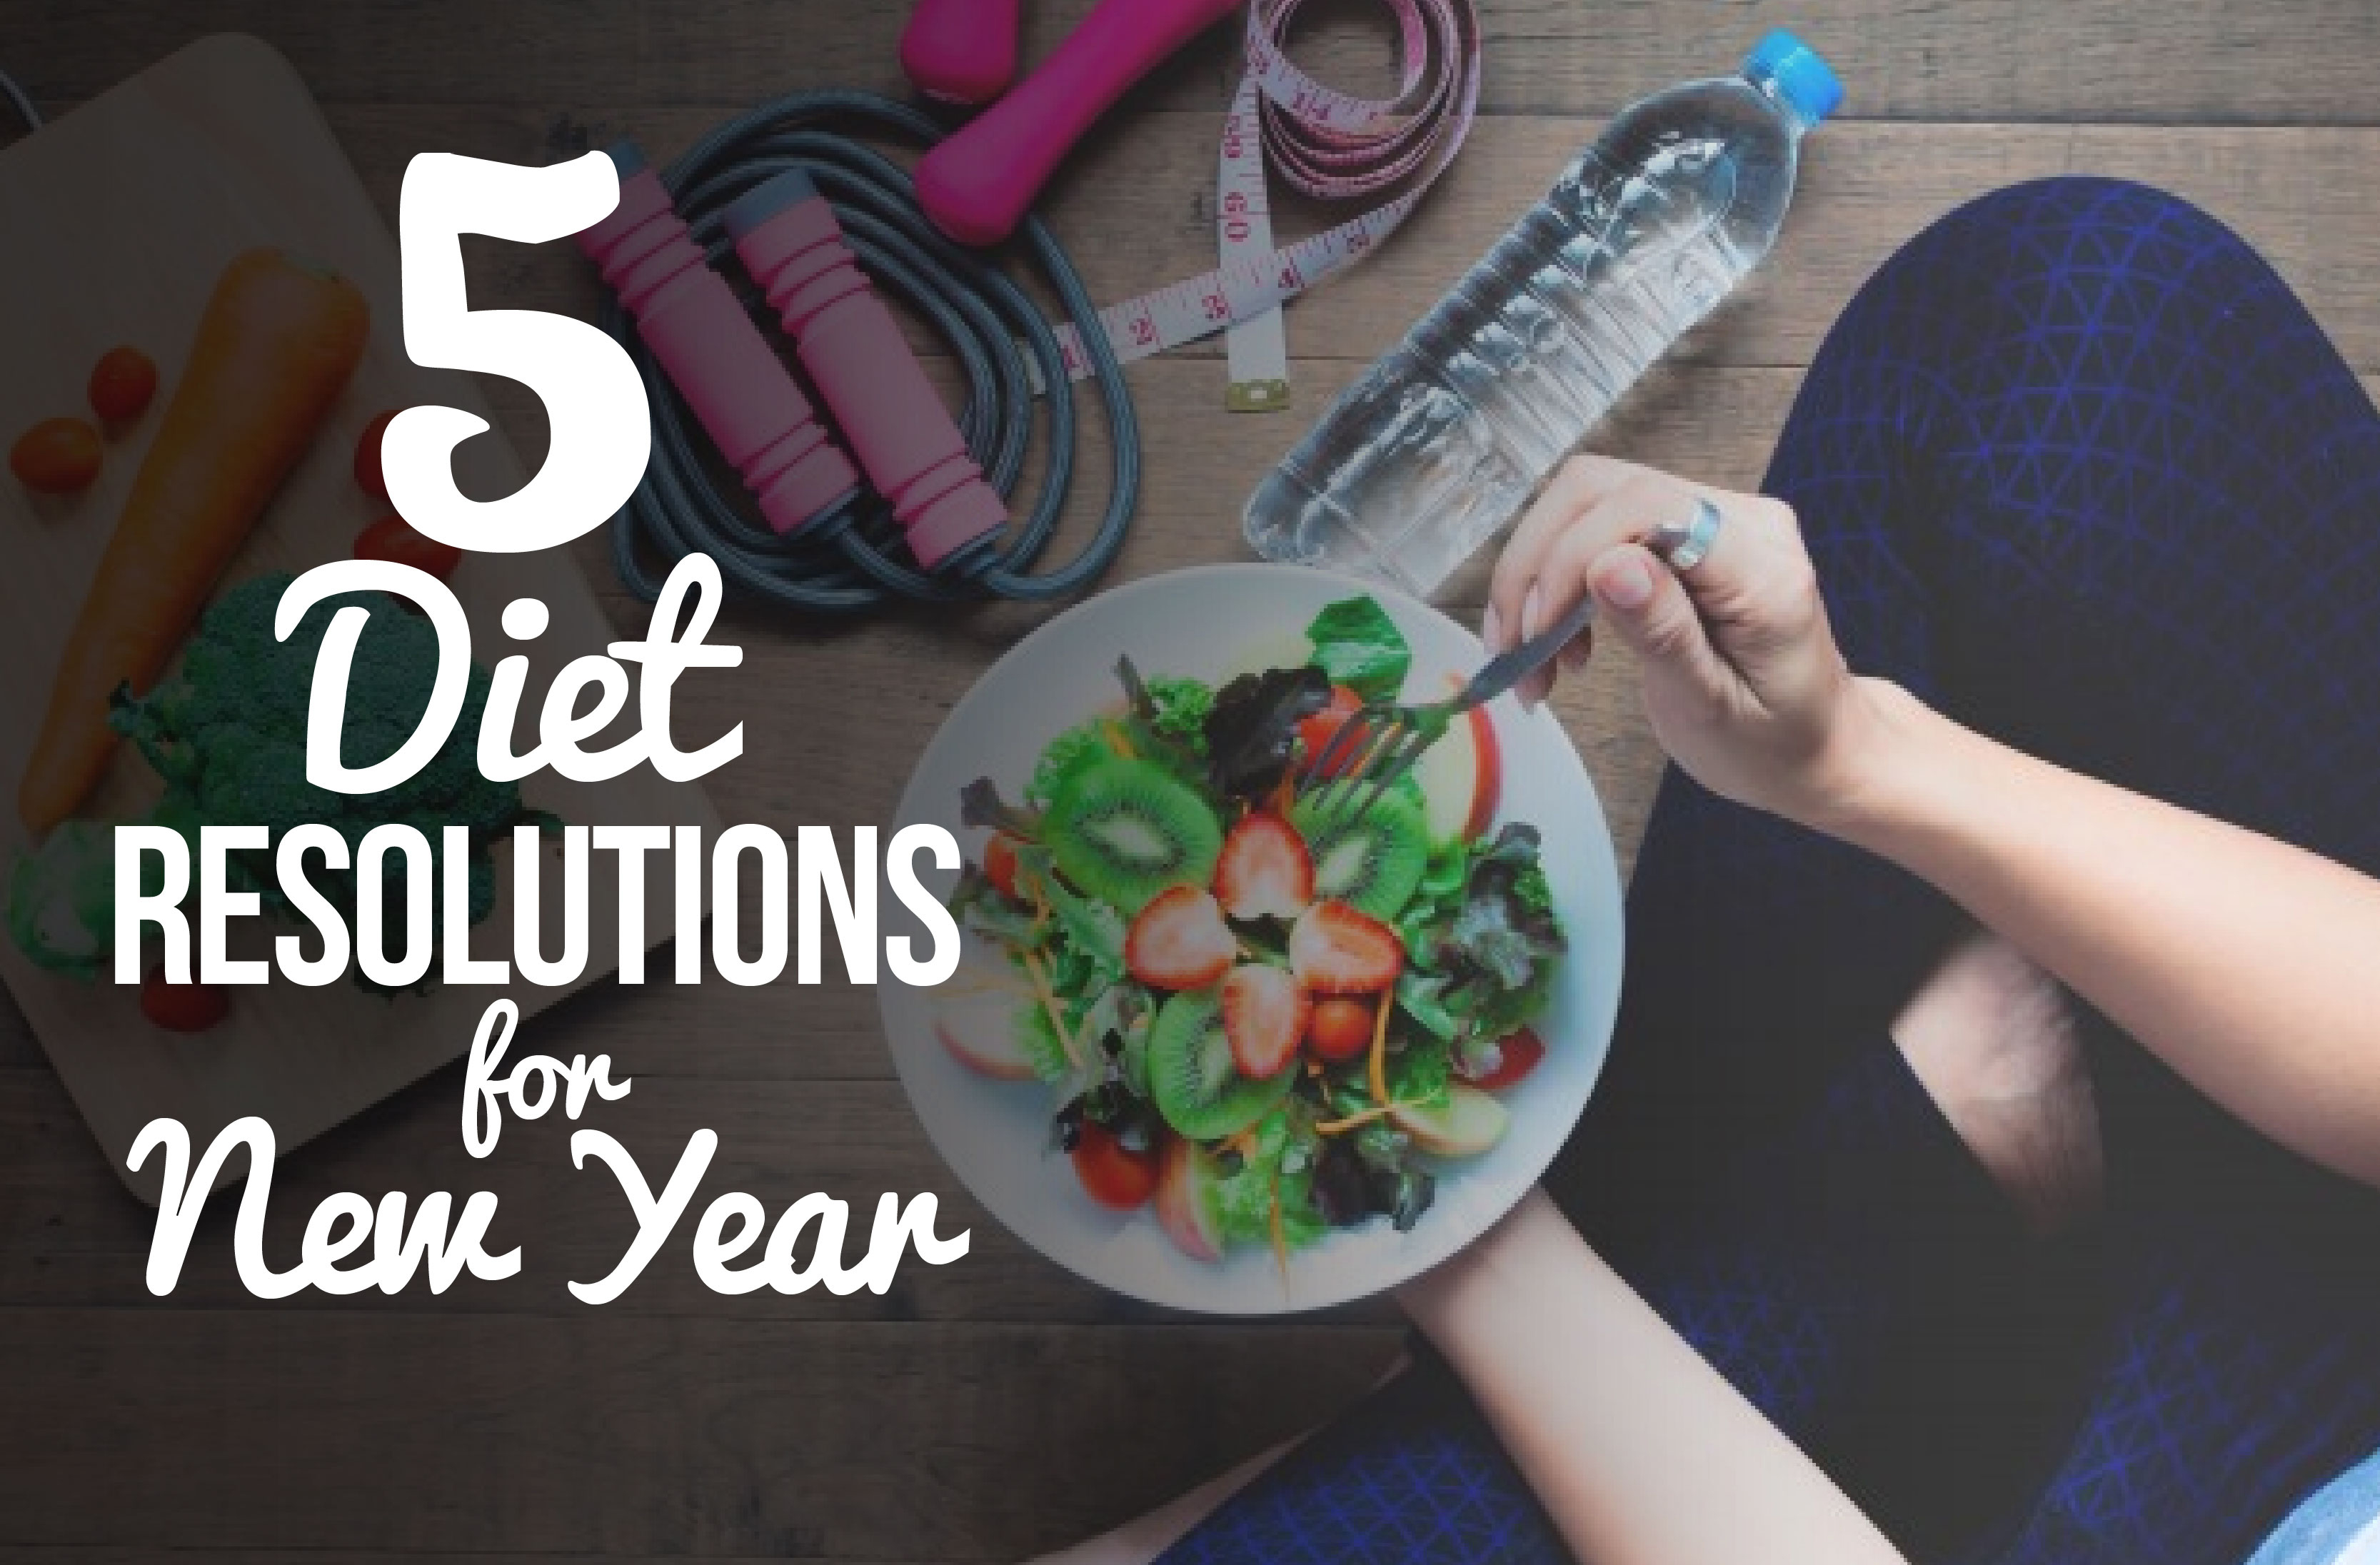 5 Diet Resolutions for New Year